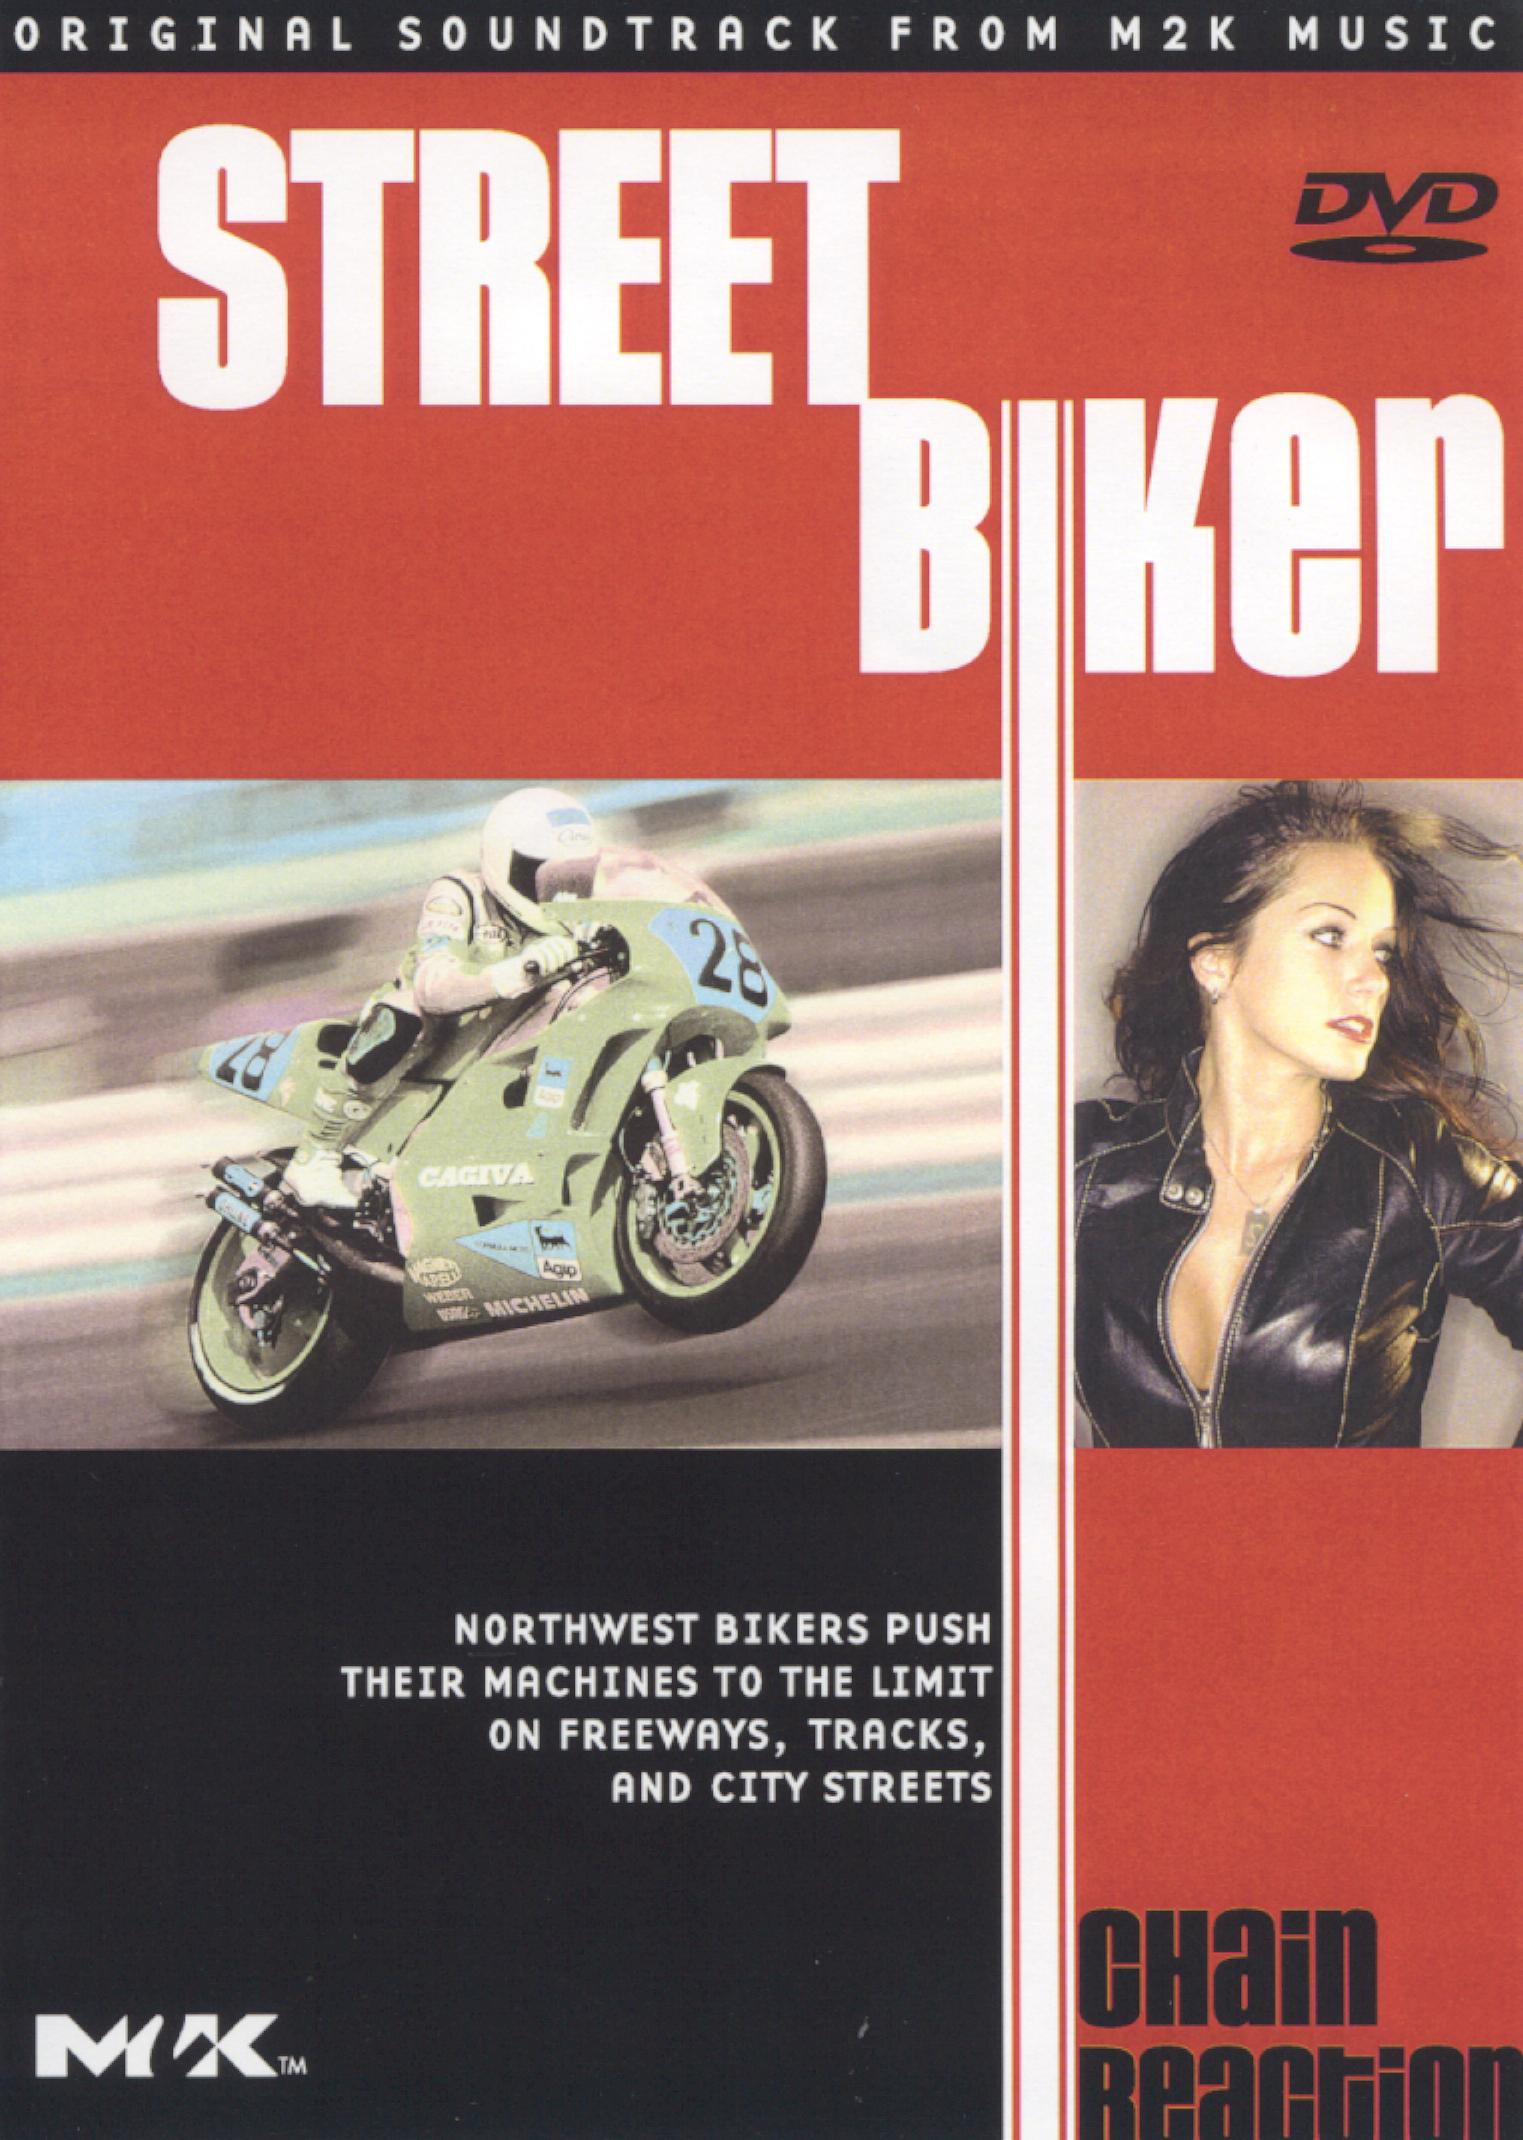 Street Biker, Vol. 2: Chain Reaction